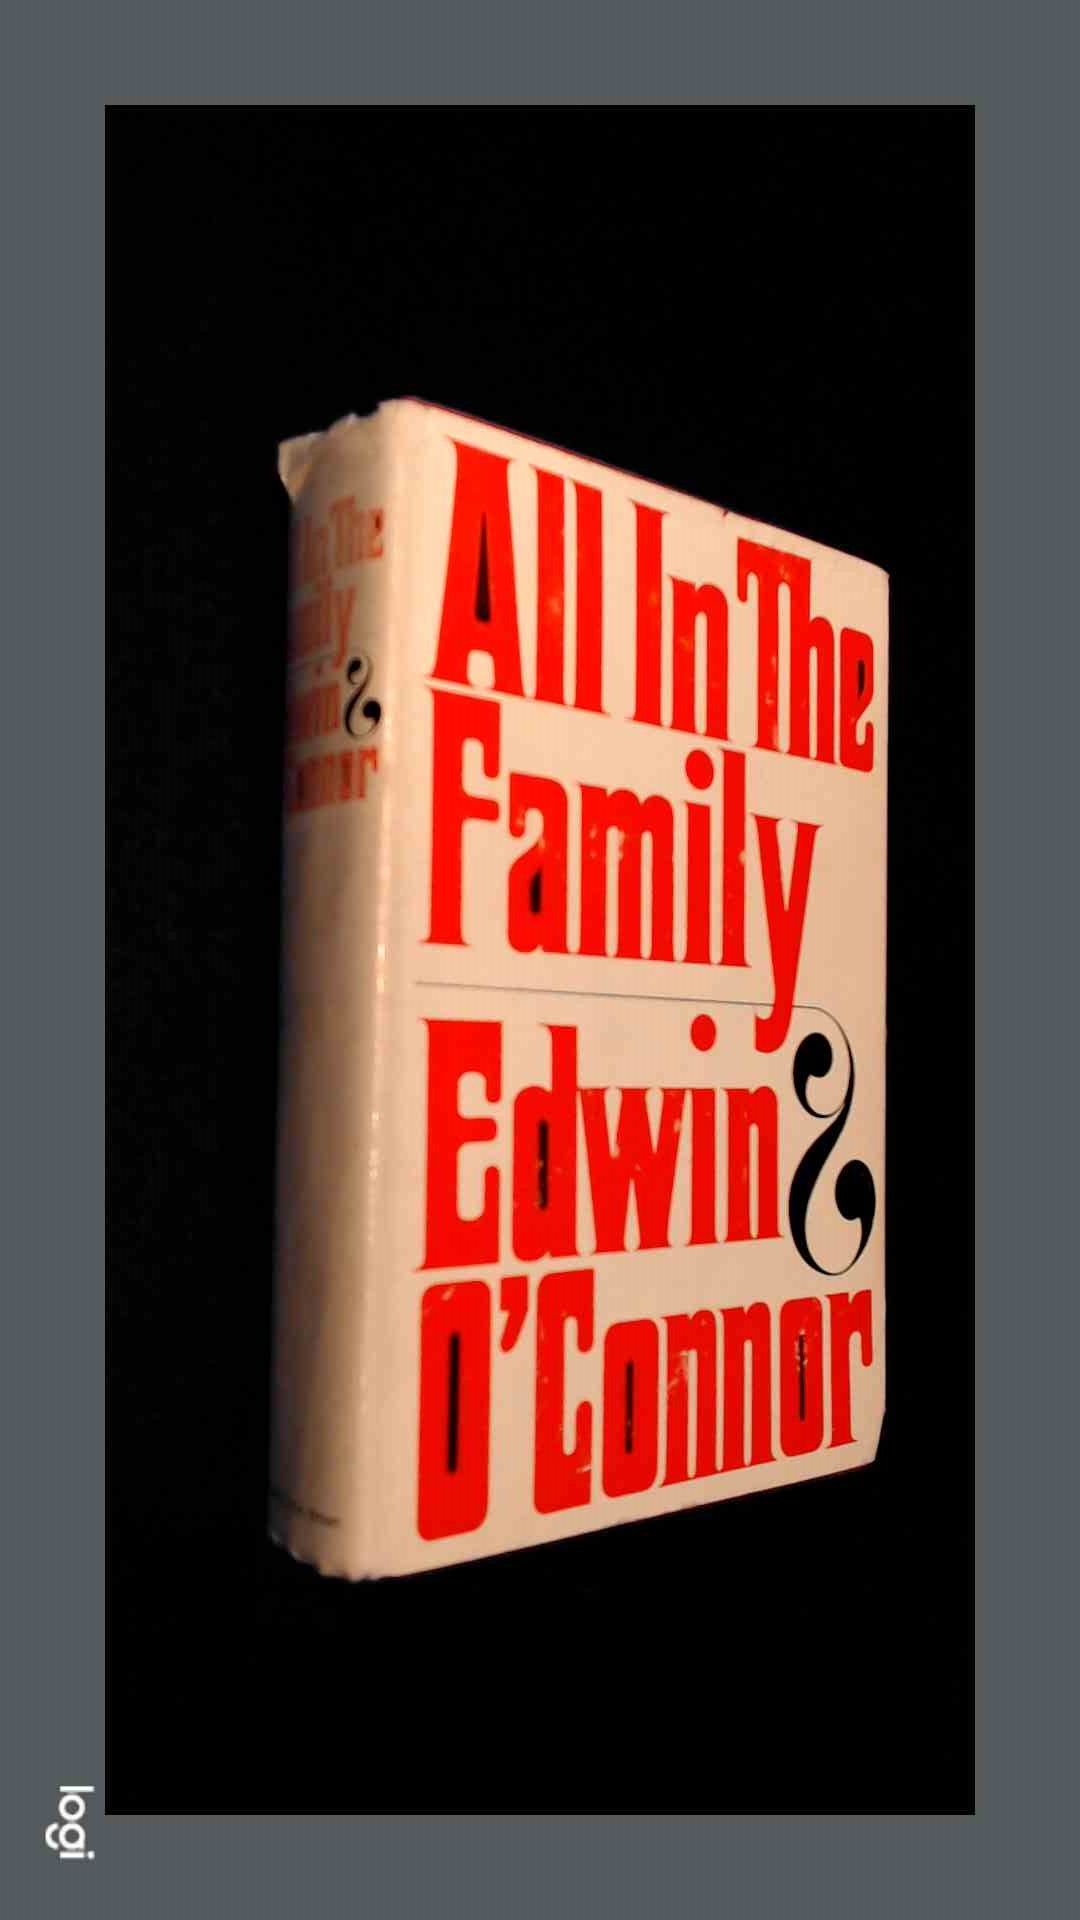 O'CONNOR, EDWIN - All in the family